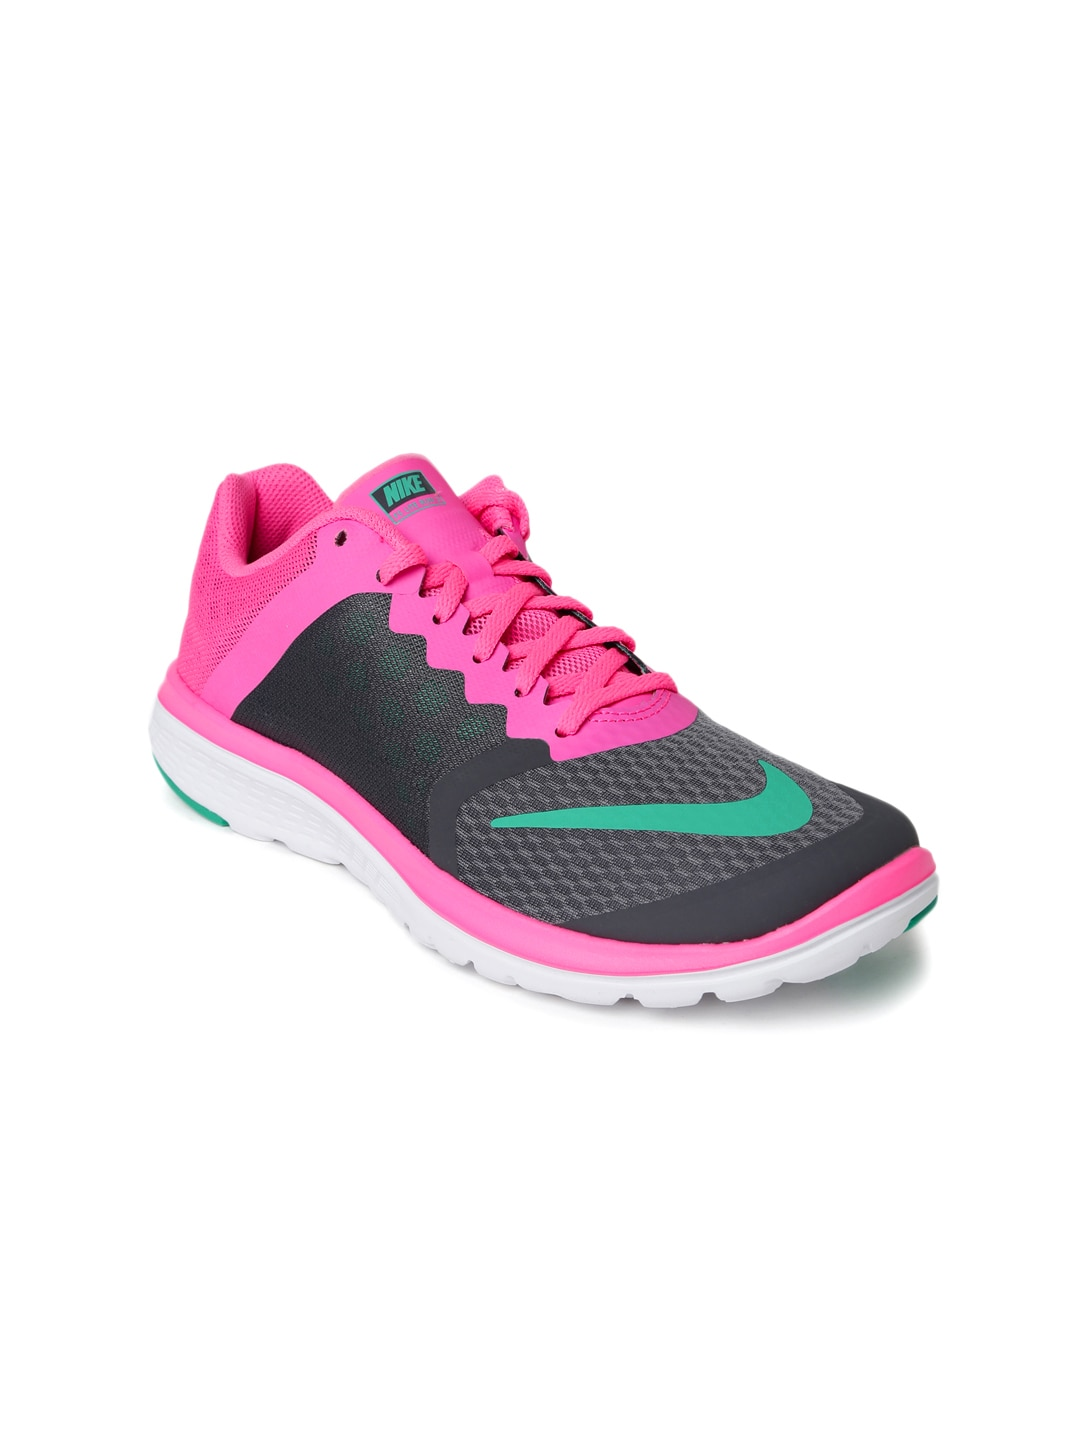 new style f11e0 2a2a4 Nike 807145-011 Women Charcoal Grey And Neon Pink Fs ...